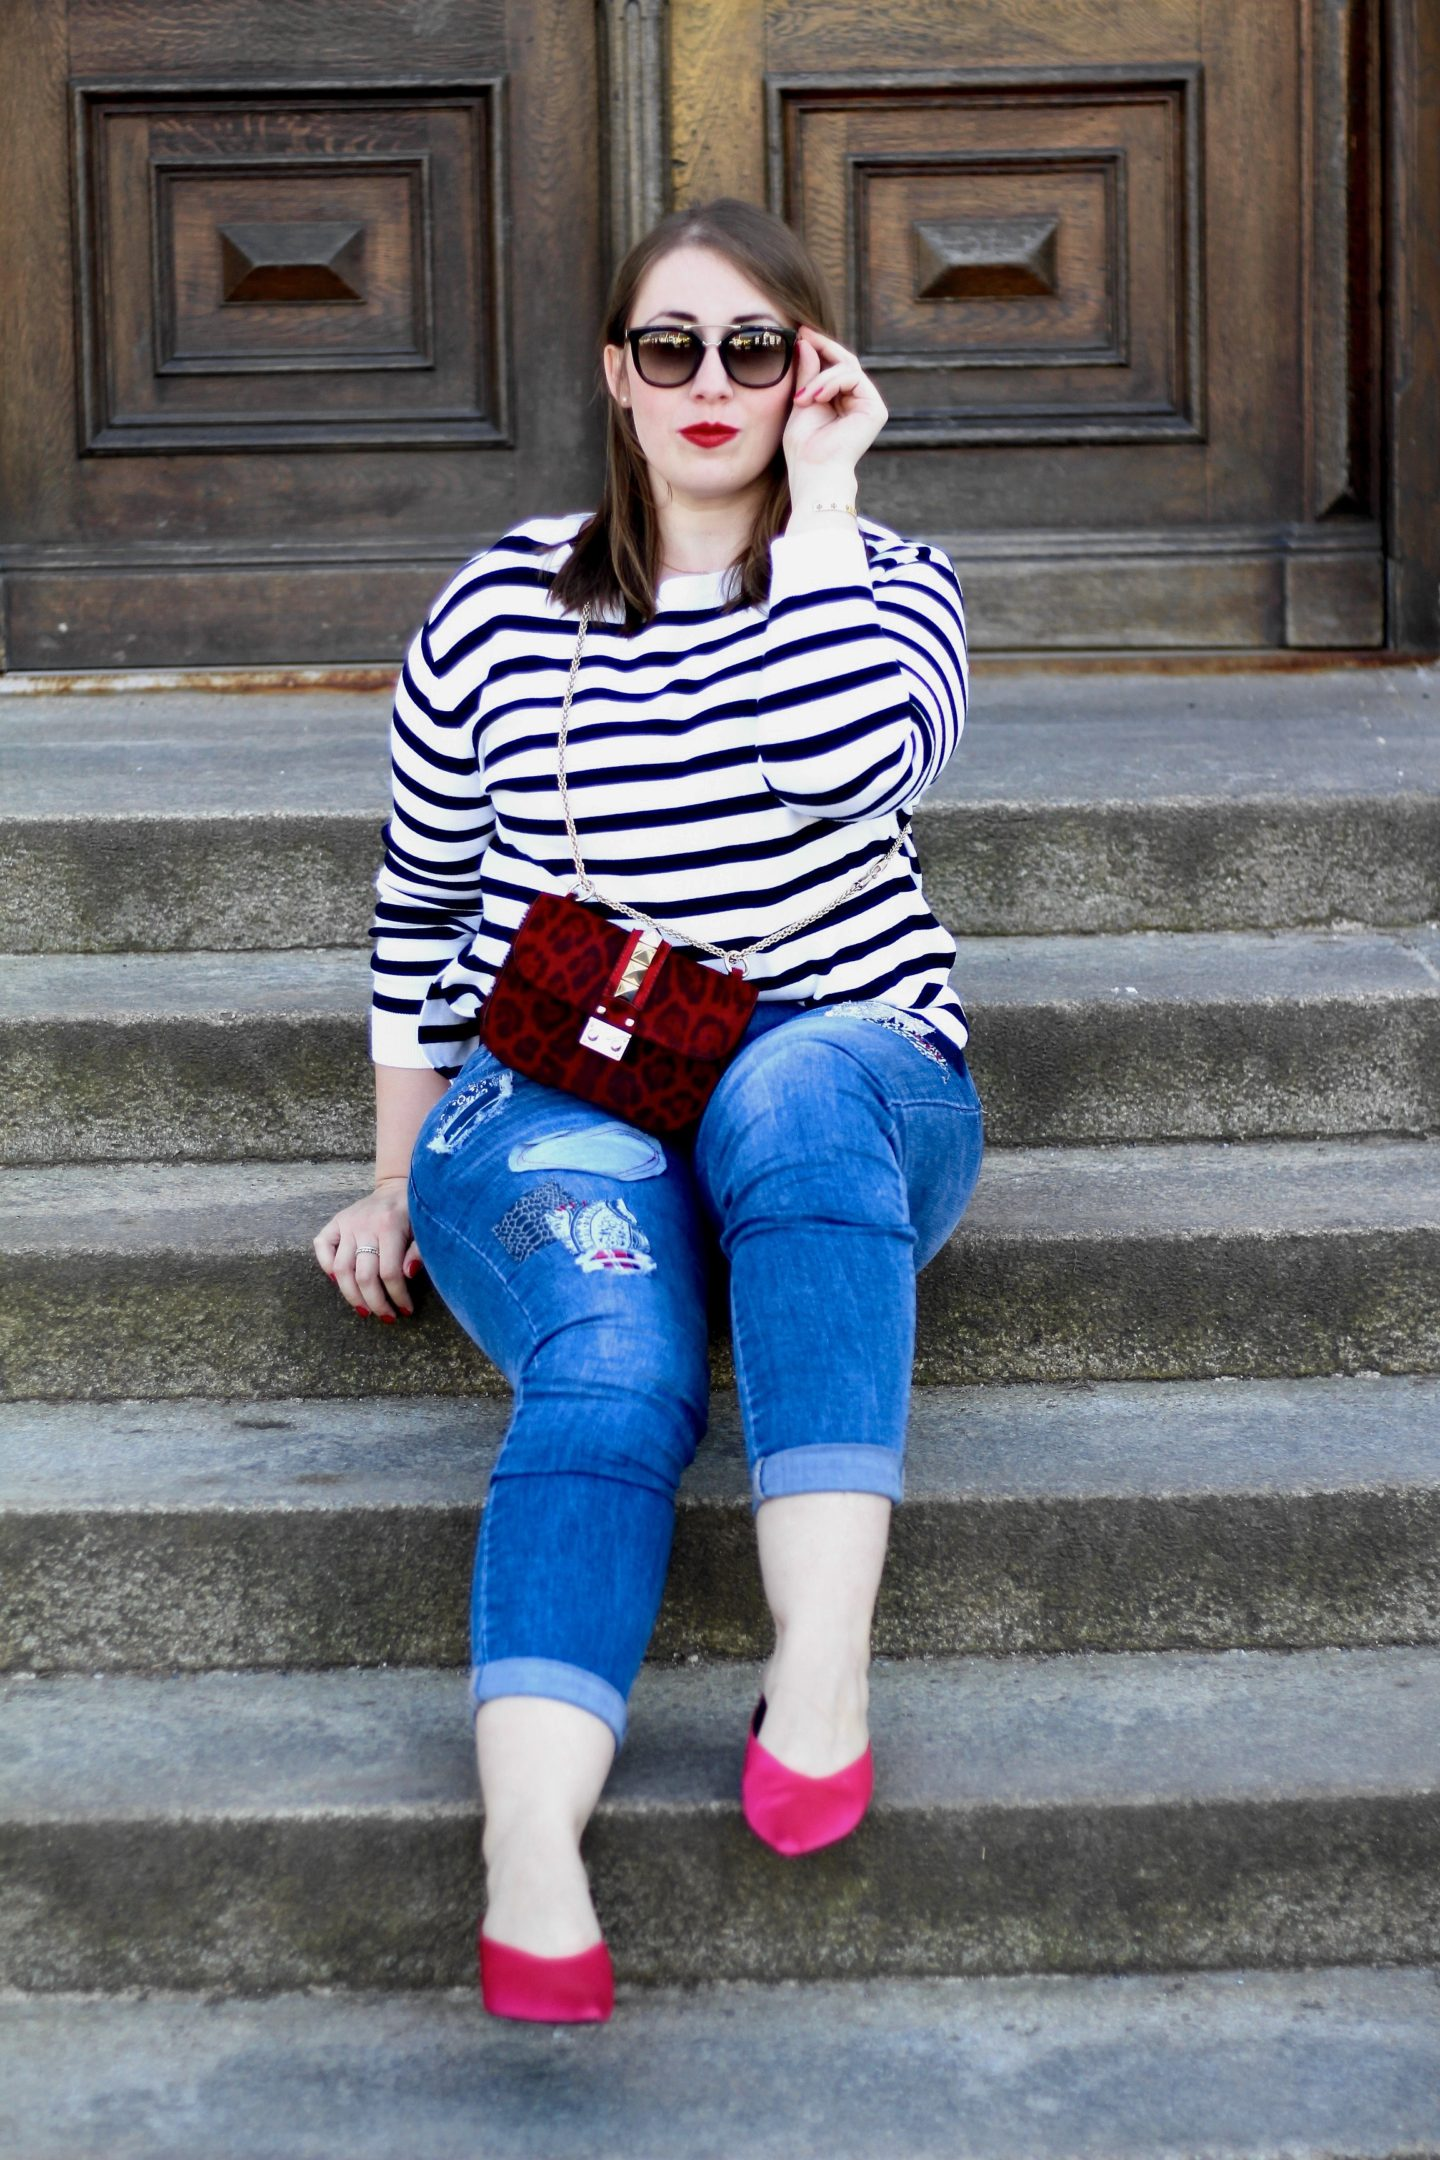 casual-outfit-patches-jeans-streifen-pullover-pink-pumps-valentino-glam-lock-ponyfell-rot-miss-suzie-loves-susanne-heidebach-fashionblogger-munichblogger-outfitdetails-mules-zara